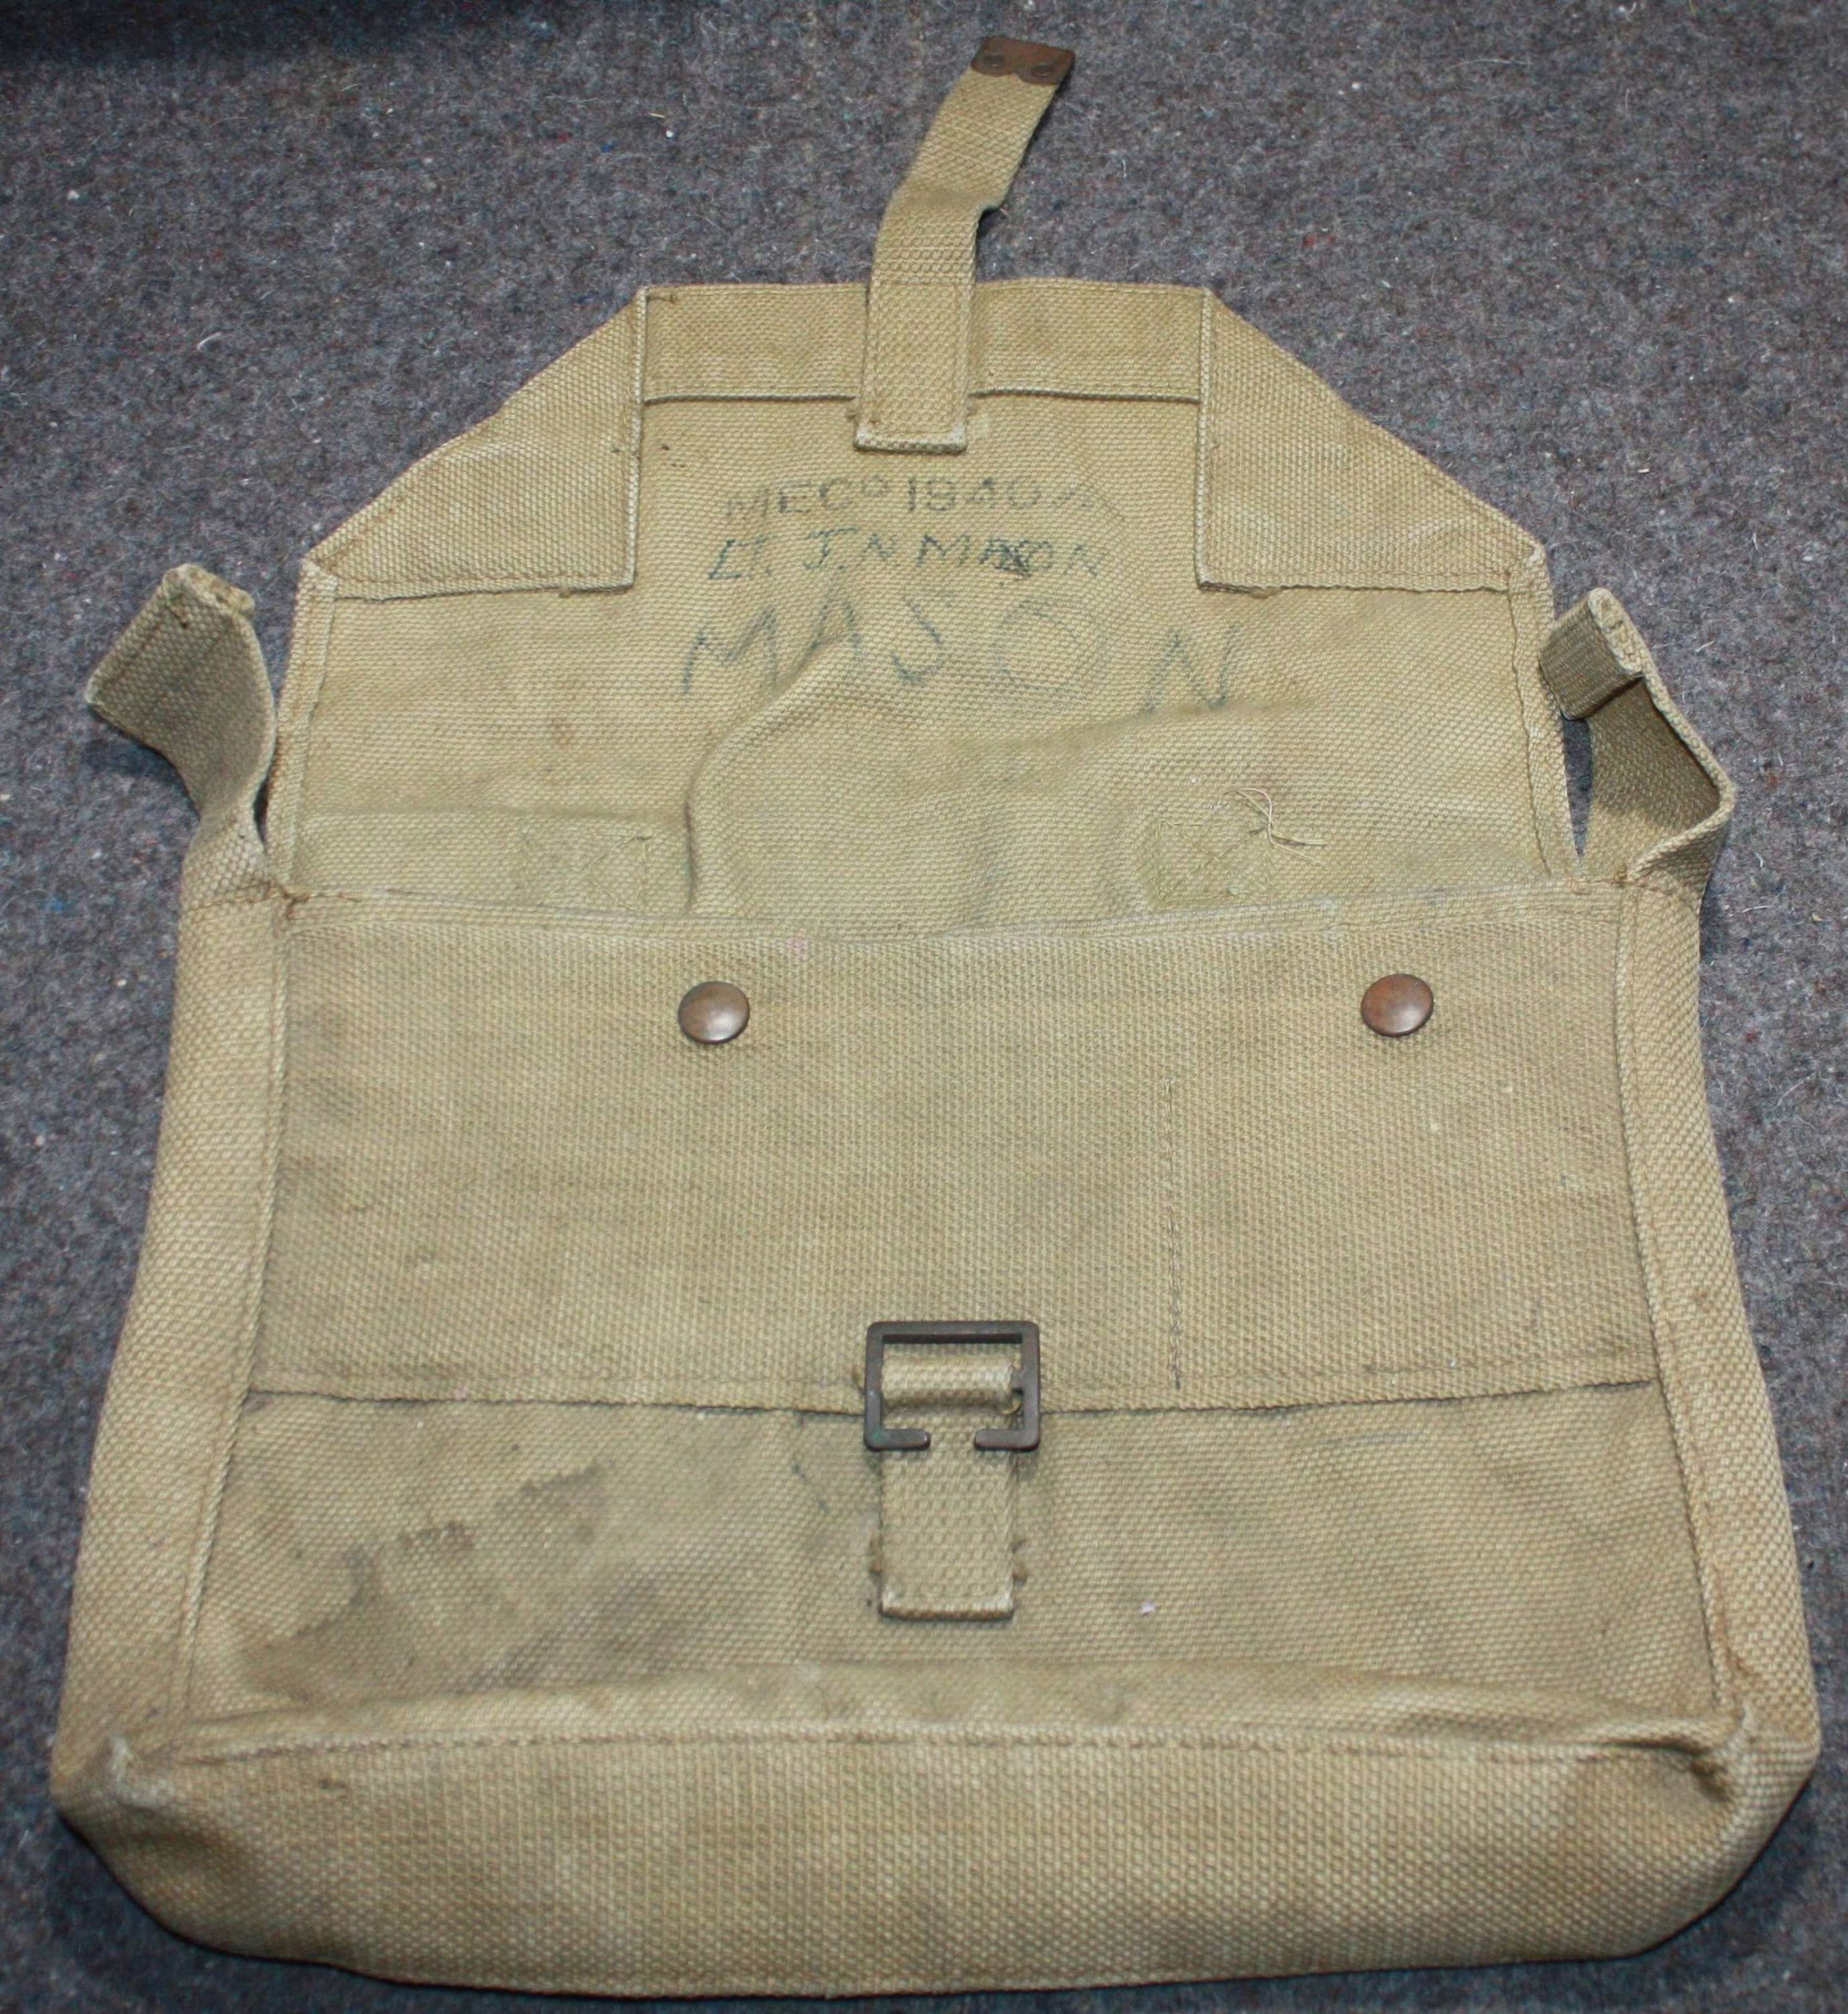 A WWII OFFICERS USED SIDE PACK 1940 DATED